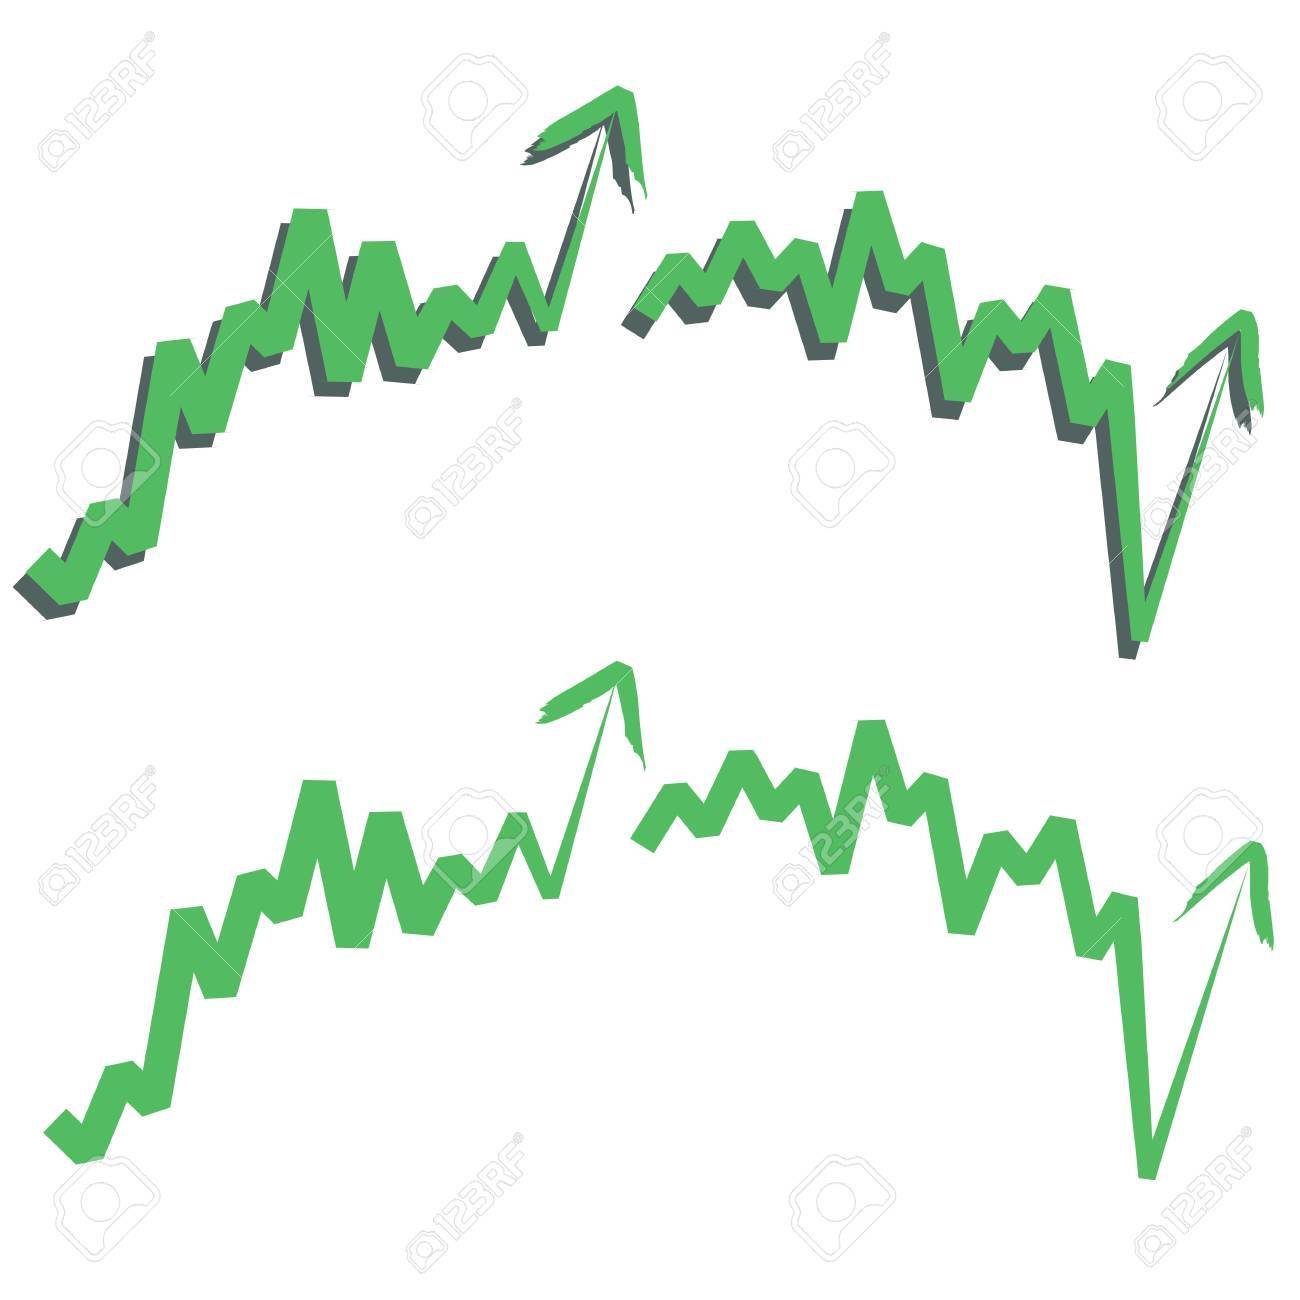 stocks index upward arrow, indicate rising and rebounds. Isolated on white. Please check my profile for downward arrow. Stock Vector - 10598949